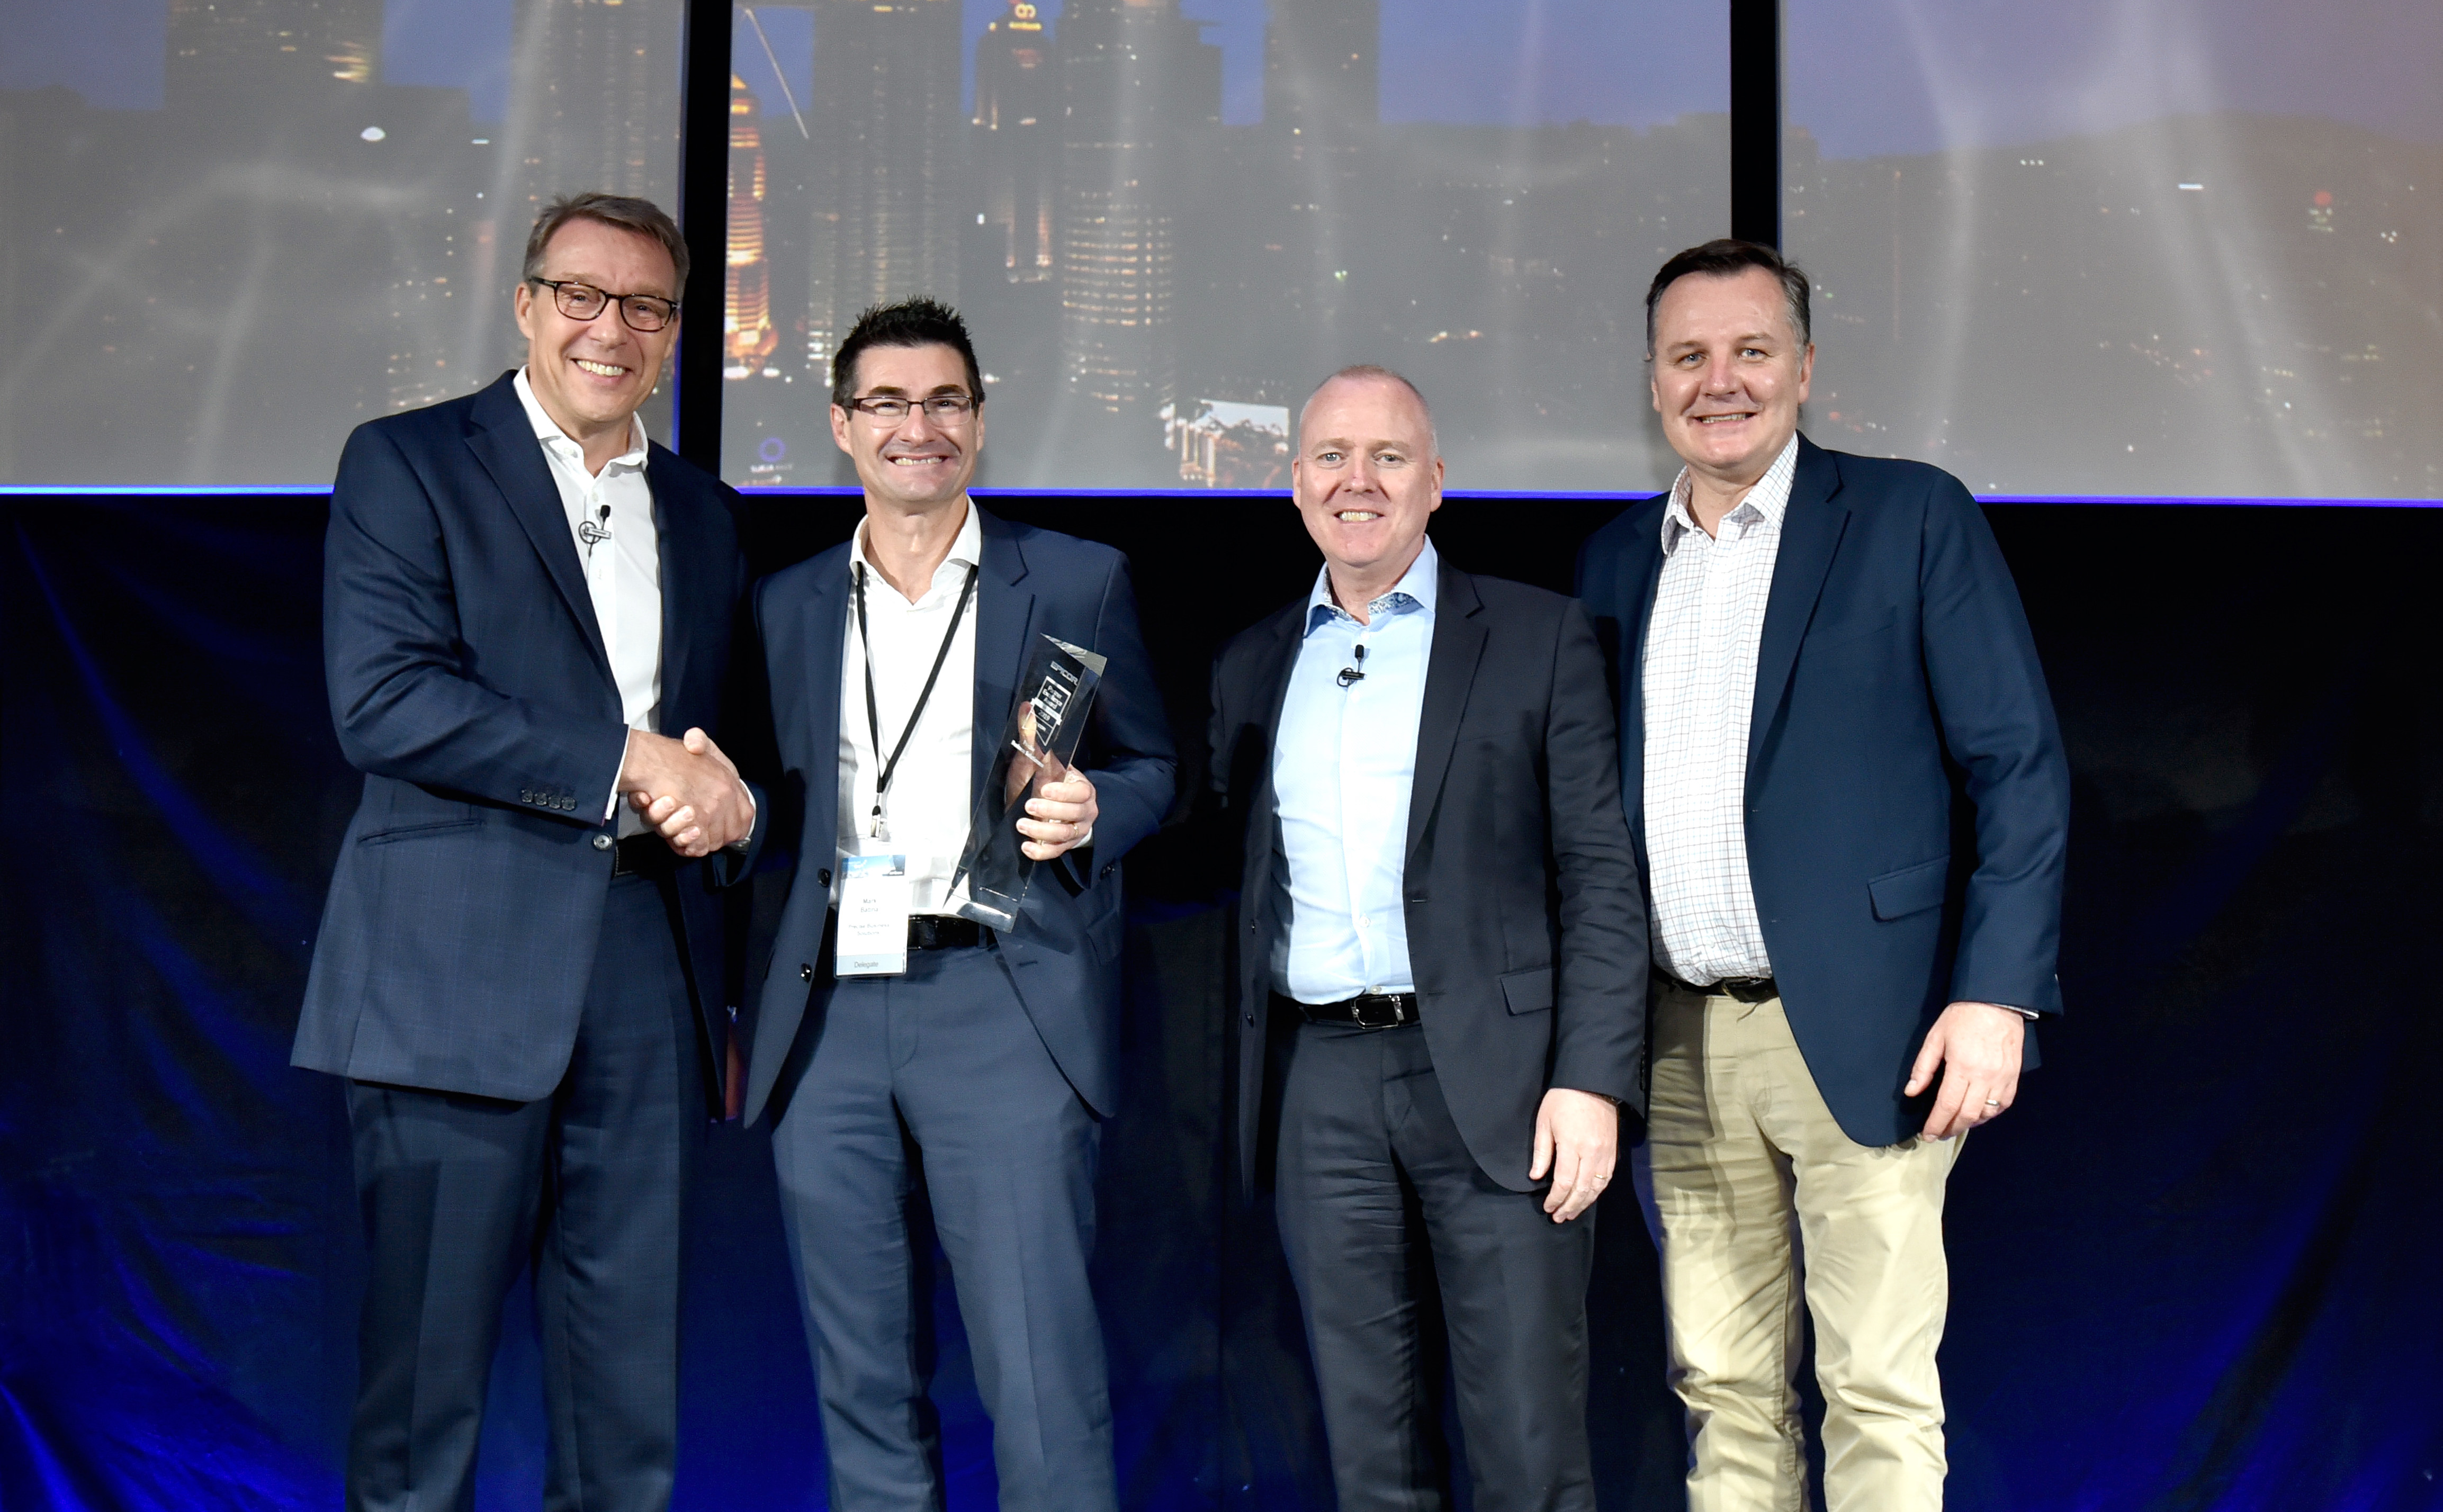 Managing Director Mark Batina accepting the 2019 Customer Excellence Award at the Epicor ANZ Insights conference